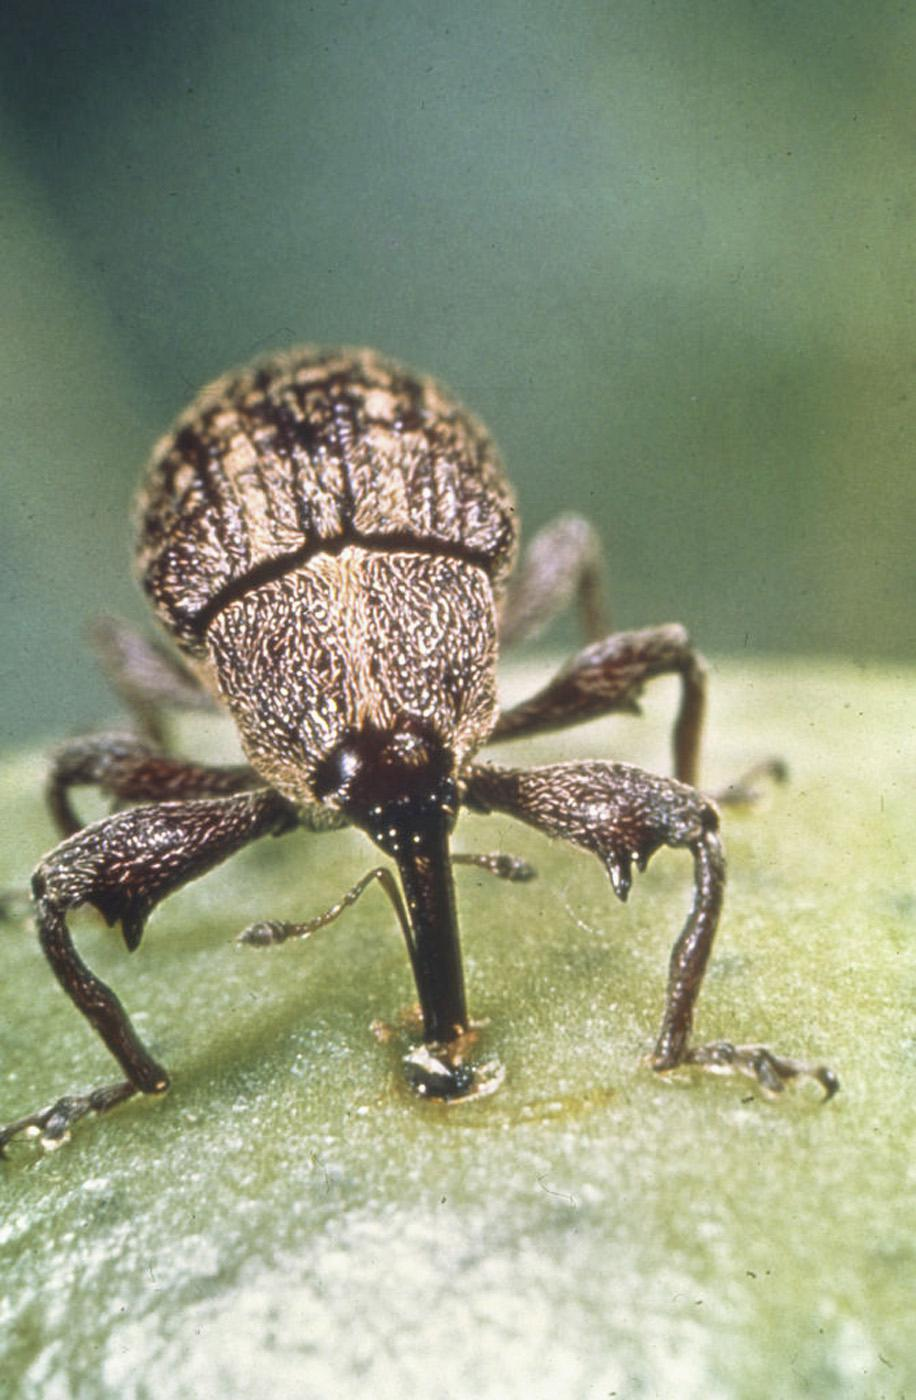 Boll weevils used to number in the thousands per acre in Mississippi, but boll weevil eradication reduced that number to just three found in the state in 2008. This boll weevil has punctured a cotton boll and is feeding.